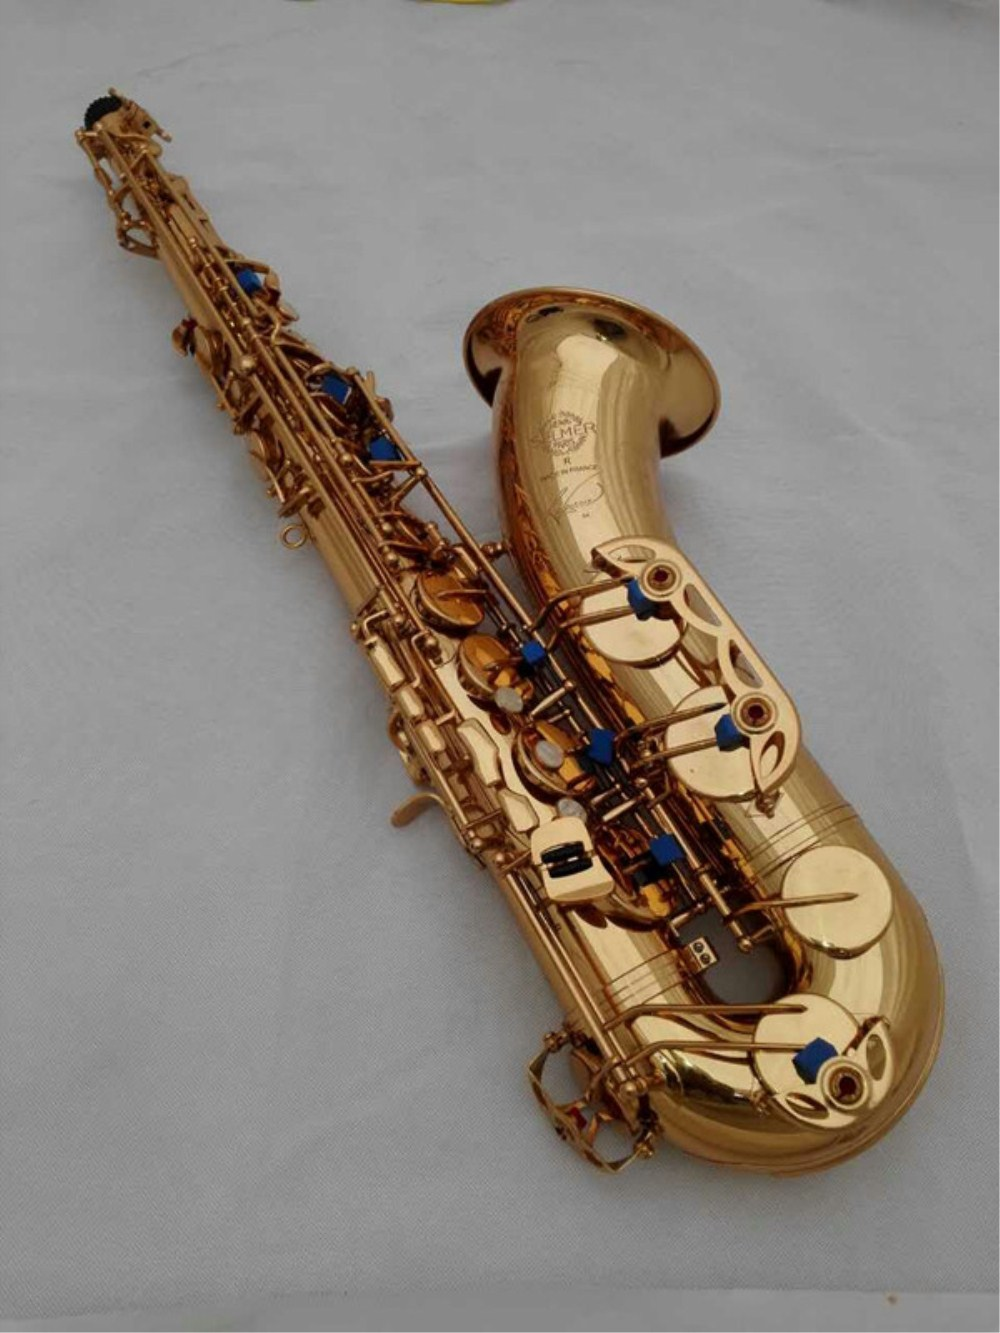 New High quality French Selmer 54 Tenor Saxophone Top Musical Instrument Sax Gold Tenor saxophone Professional tenor sax instruments 54 b selmer tenor saxophone musical instrument electrophoresis gold saxophone professional grade